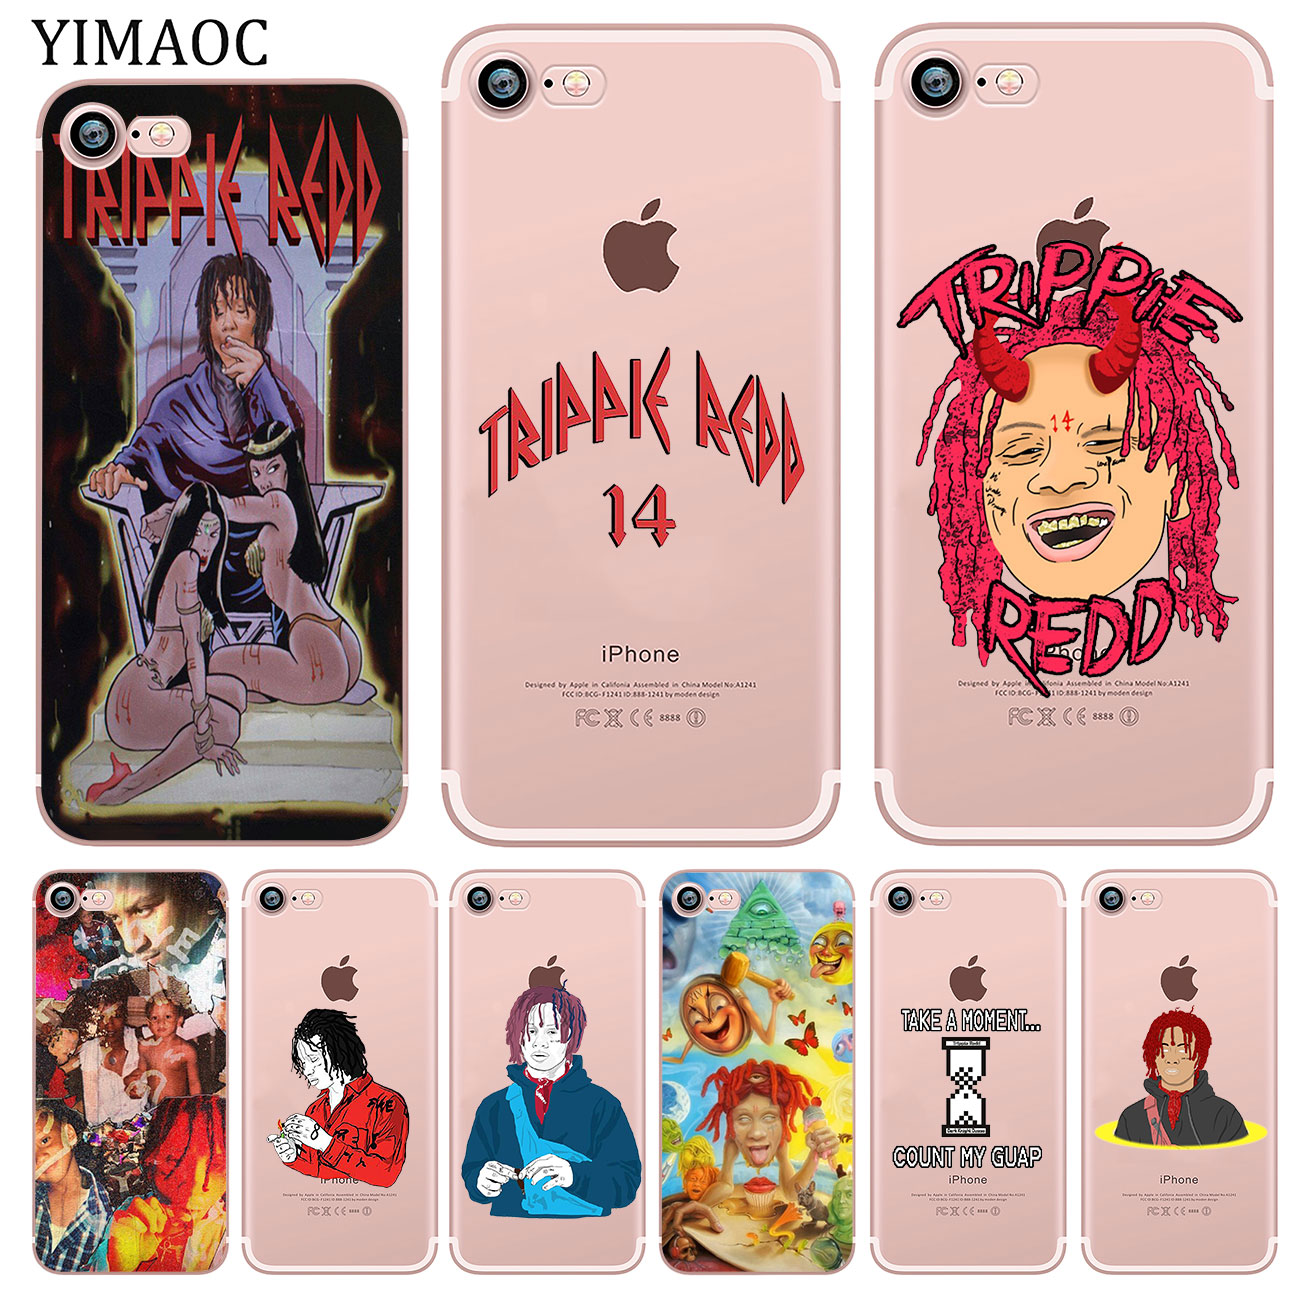 YIMAOC Hip hop artist Trippie Redd Soft Silicone Phone Shell Case for iPhone XR X XS 11 Pro Max 5 5S SE 6 6S 7 8 Plus 10 Cover image